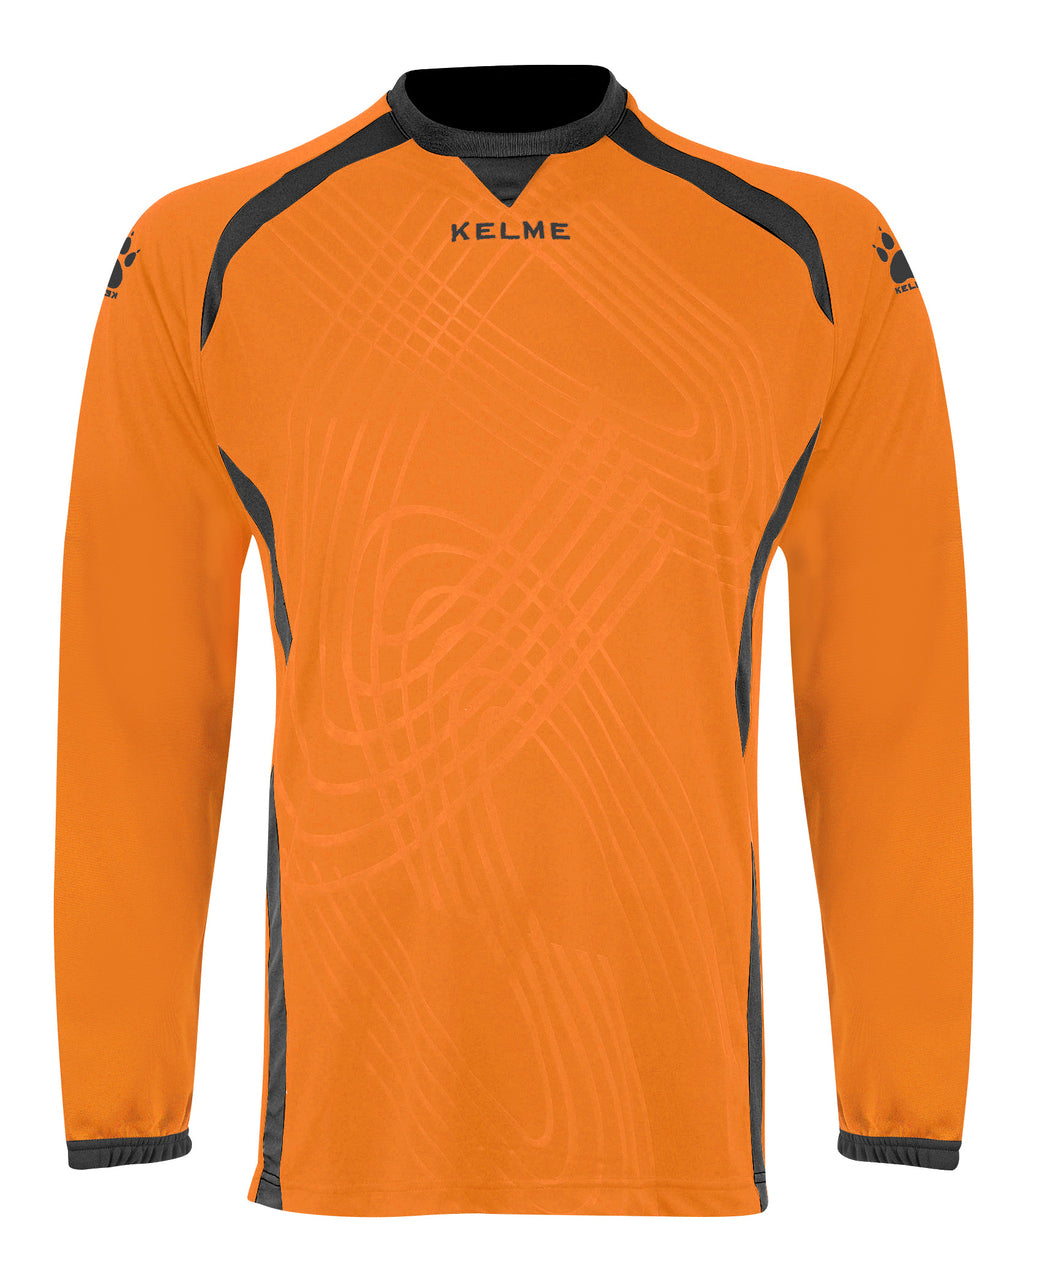 Kelme Attack Goalkeeper Jersey - Orange